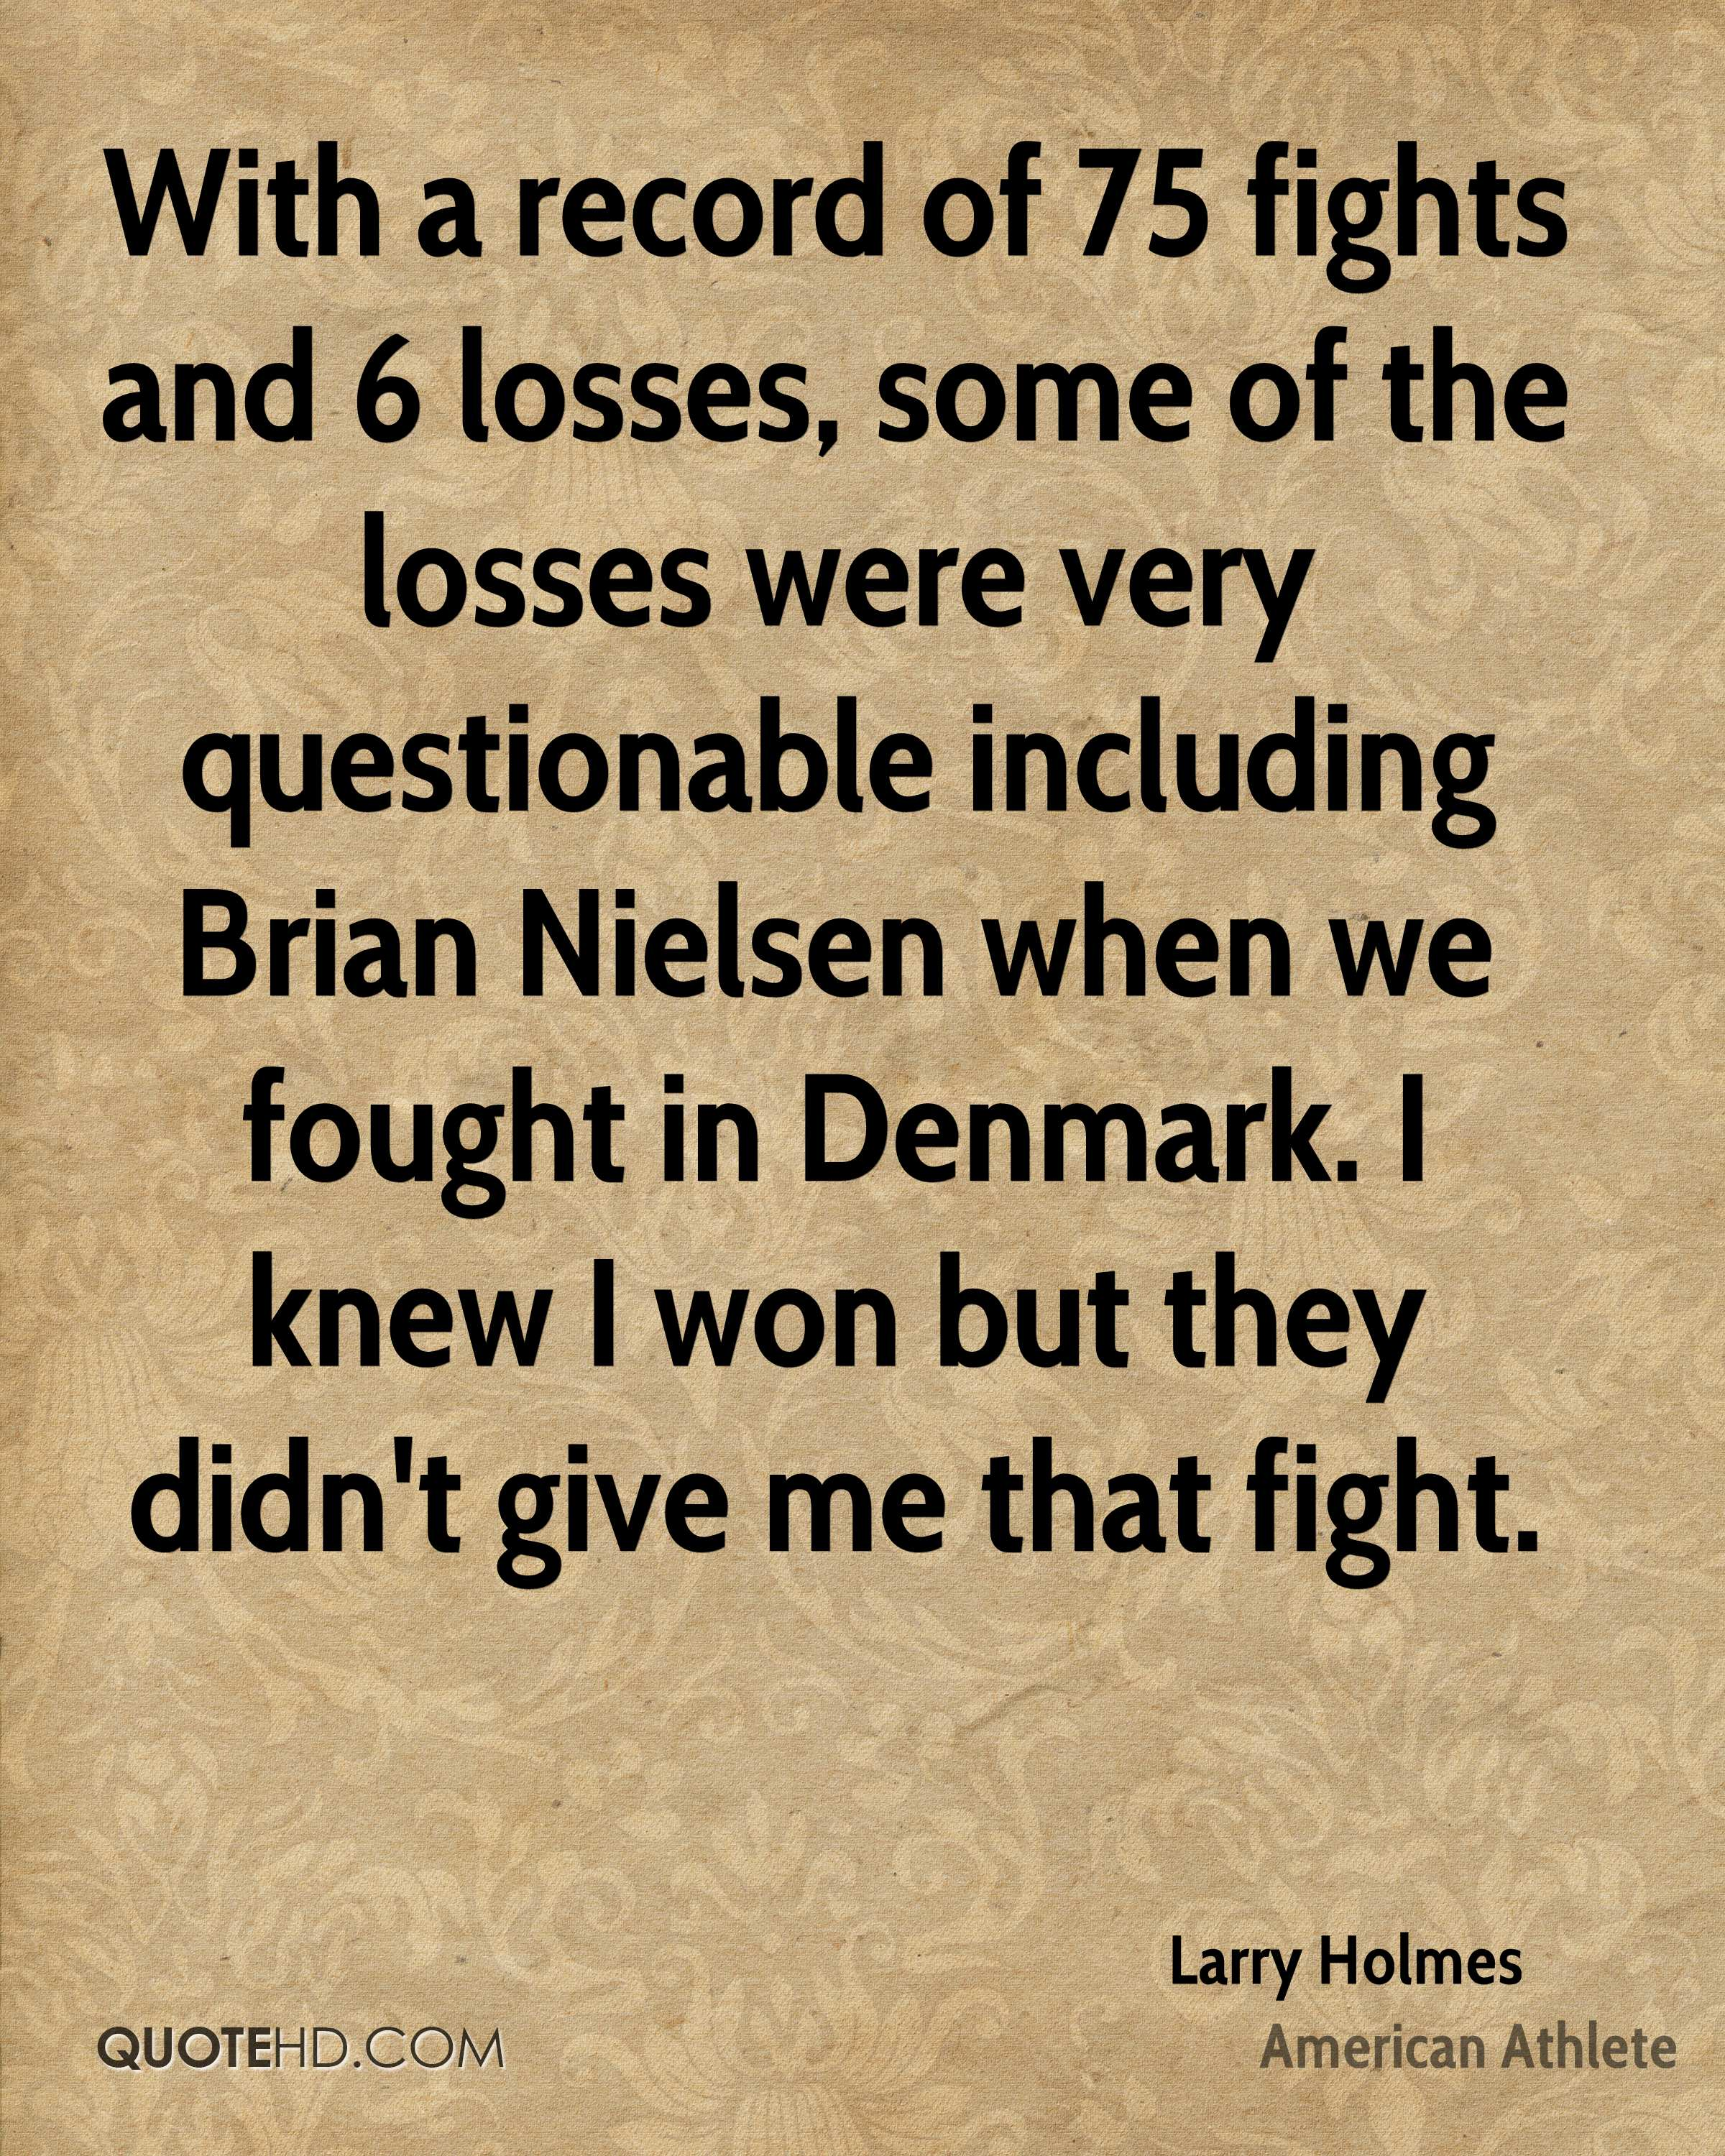 With a record of 75 fights and 6 losses, some of the losses were very questionable including Brian Nielsen when we fought in Denmark. I knew I won but they didn't give me that fight.